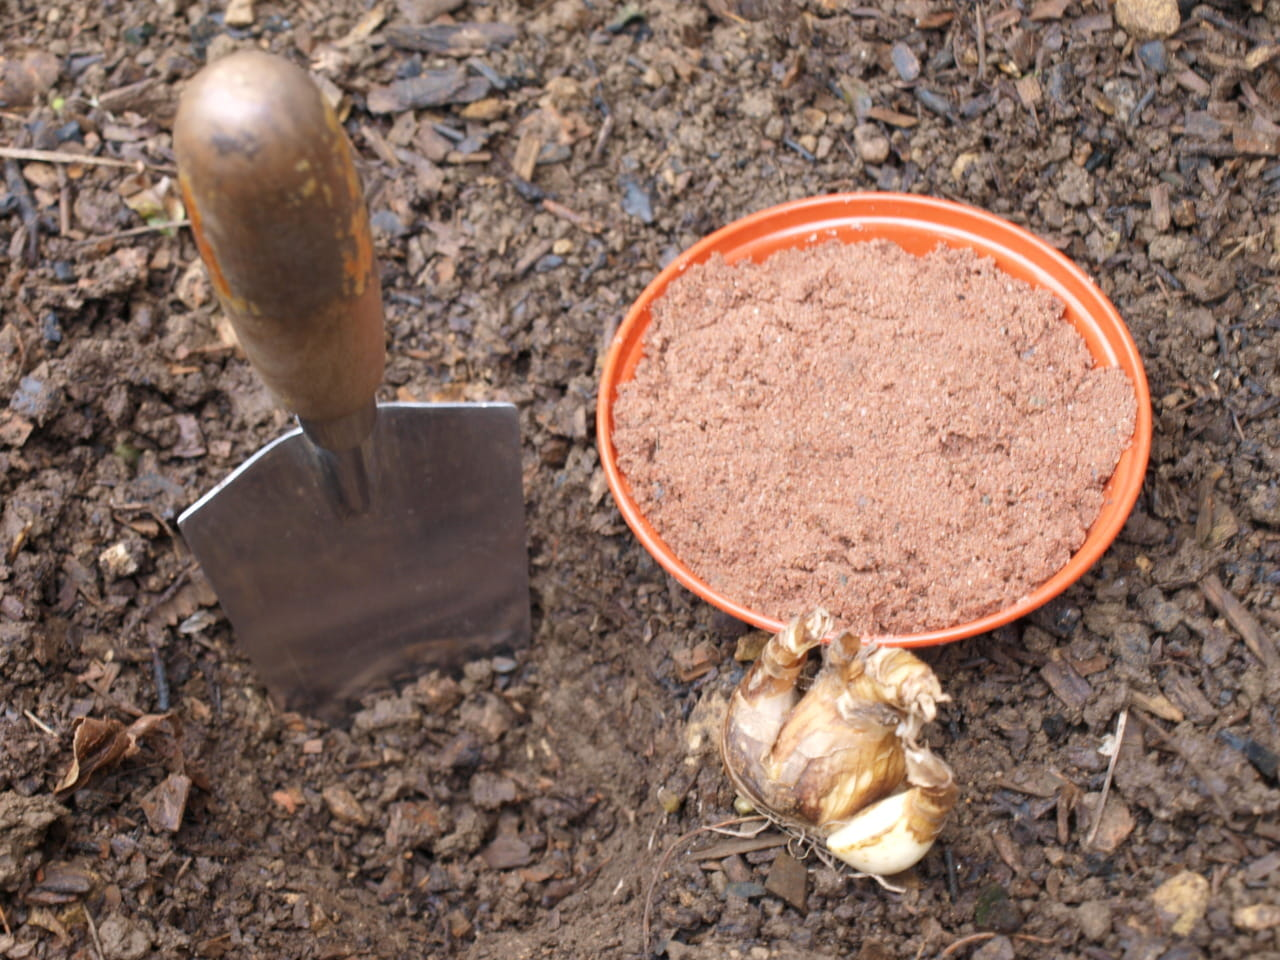 Technique for planting bulbs